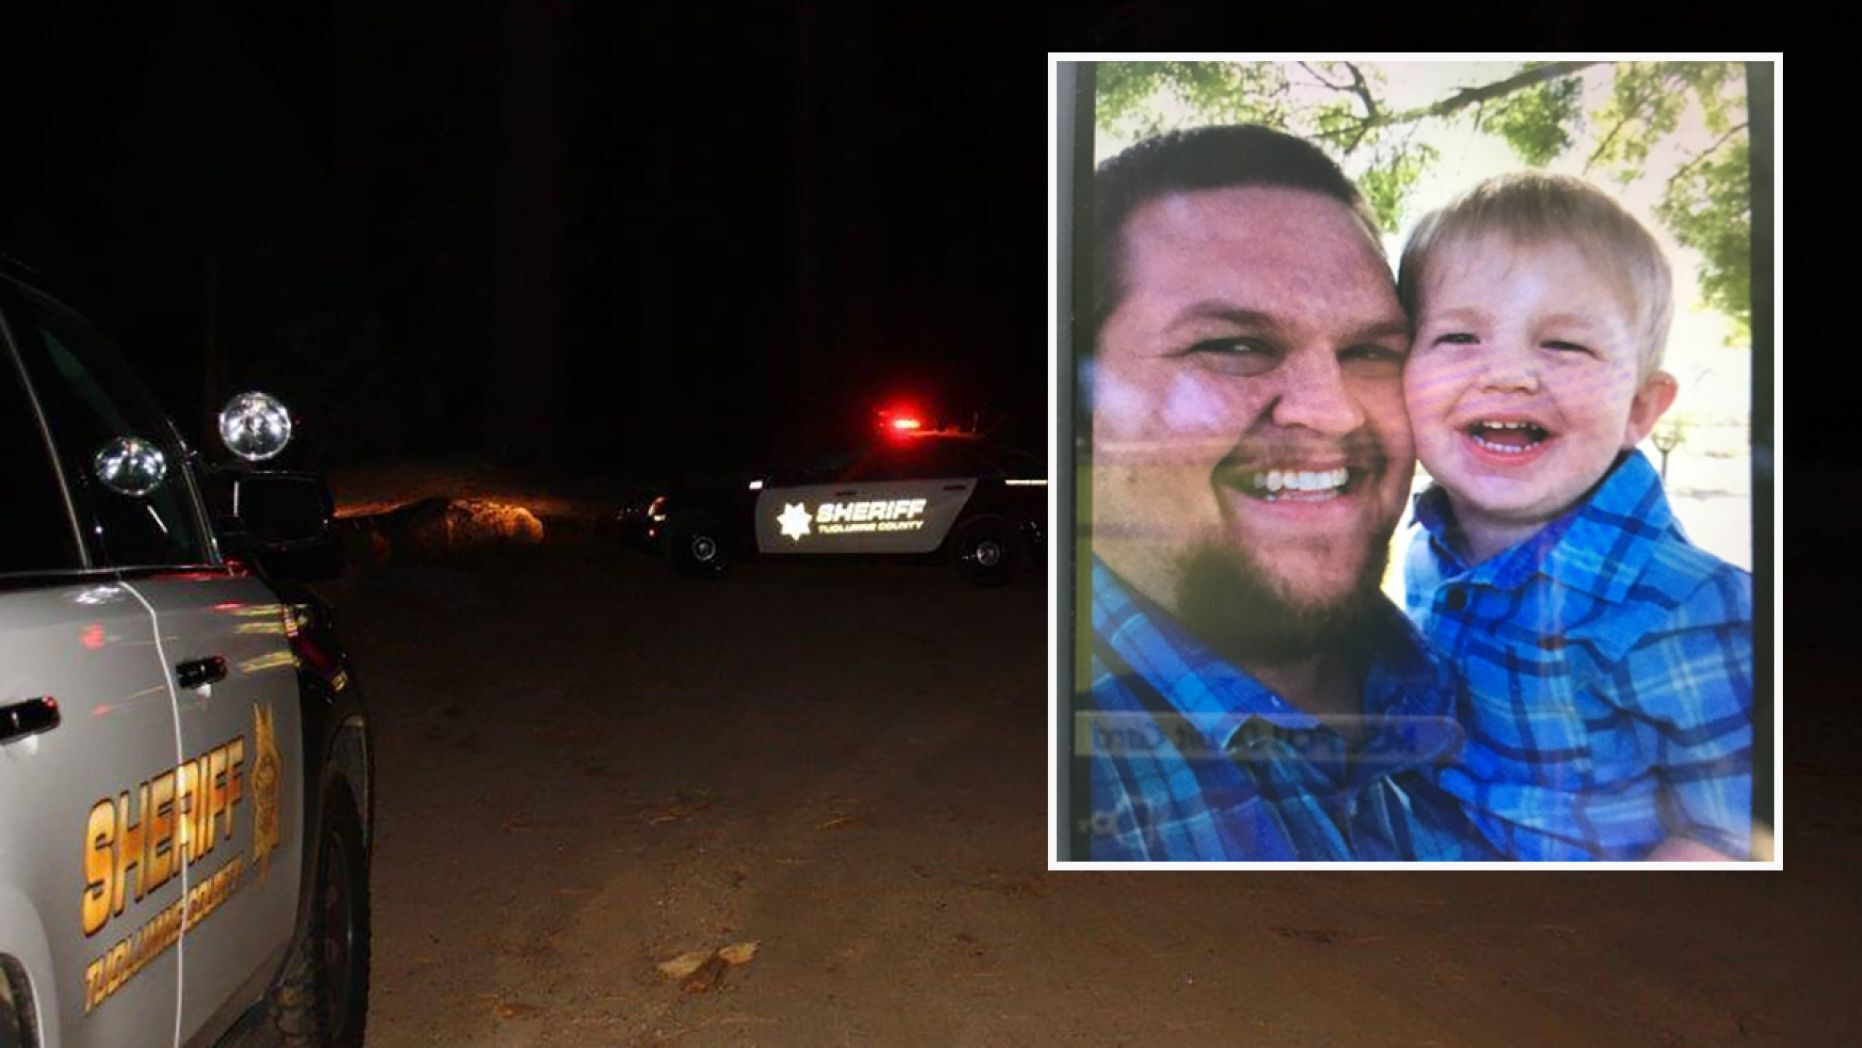 Two bodies were found near the vehicle John and Steven Weir were suspected of driving.